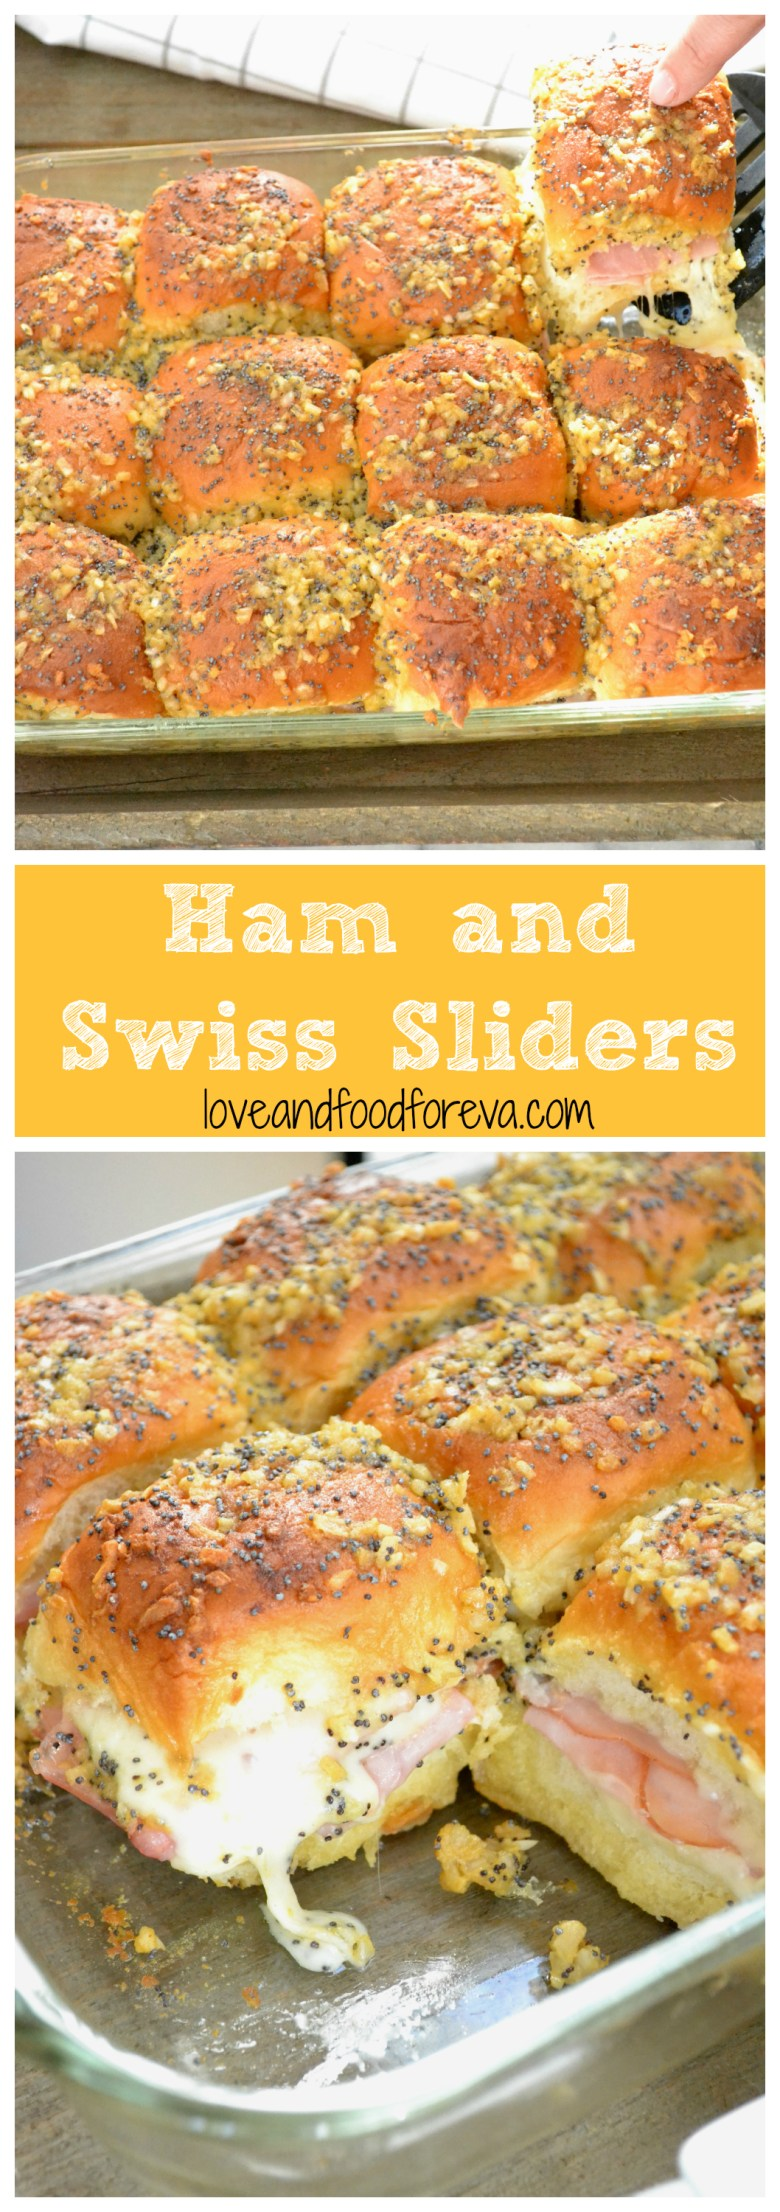 Ham and Swiss Sliders: these are a must-have at your game day party!